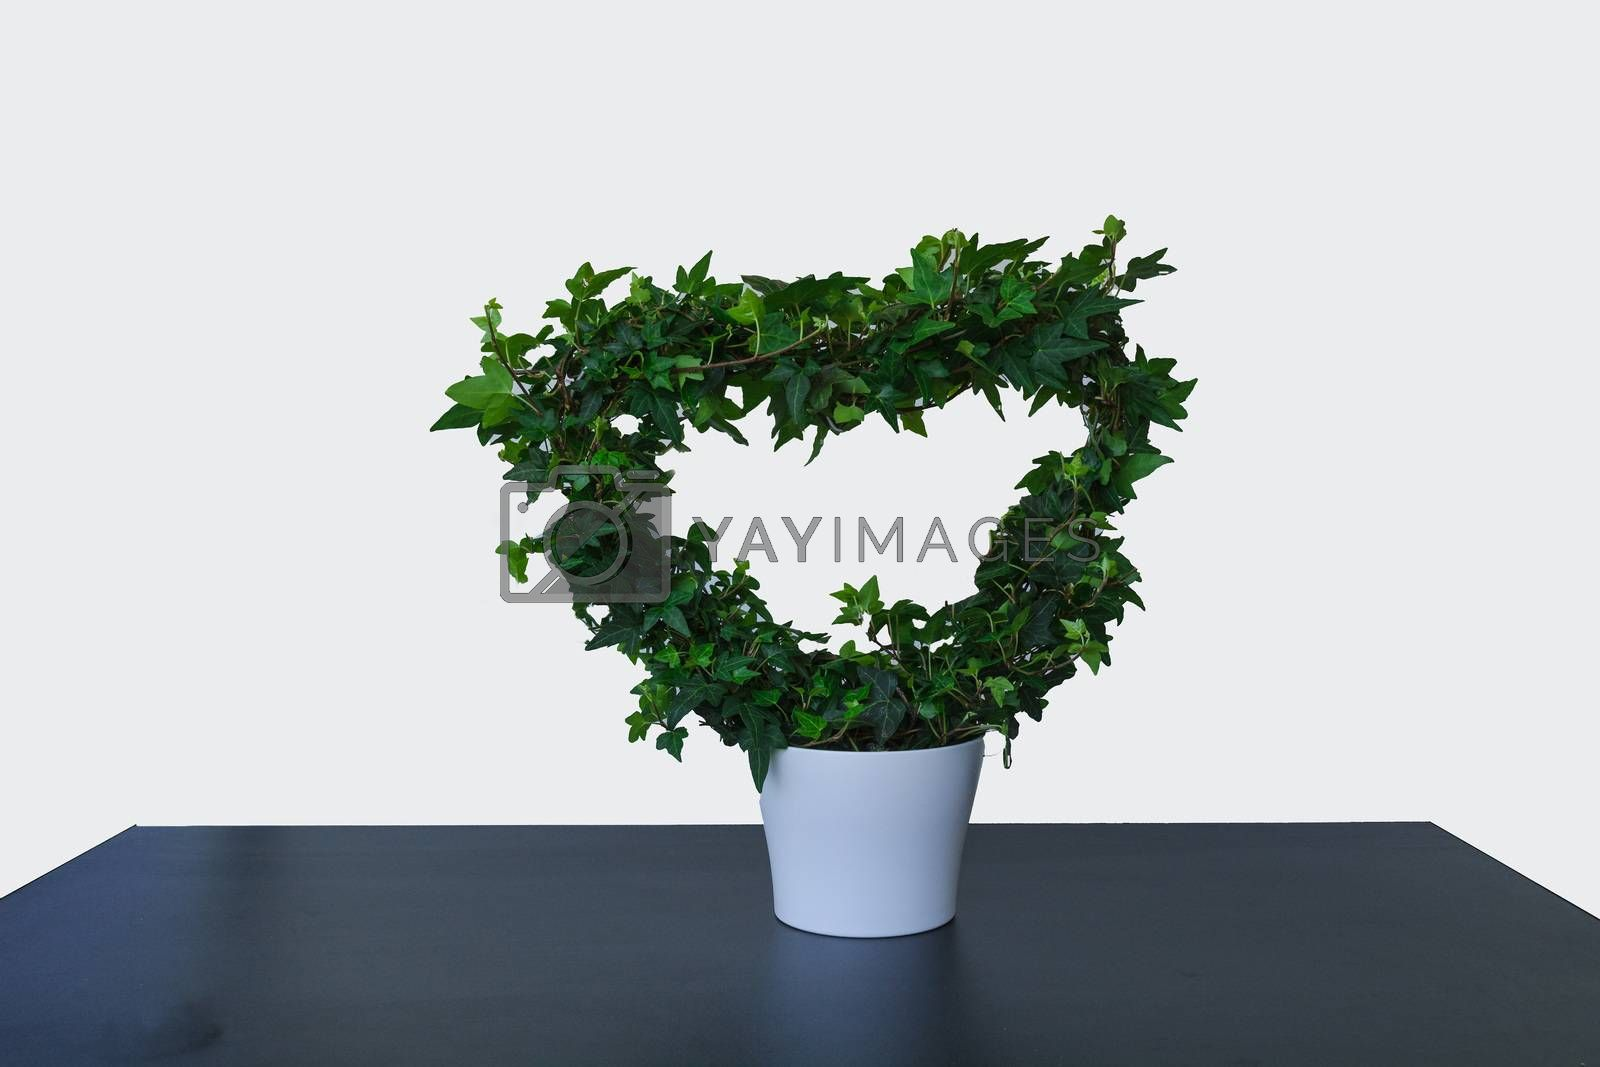 Green ivy rivers in heart-frome in front of white background in a planter